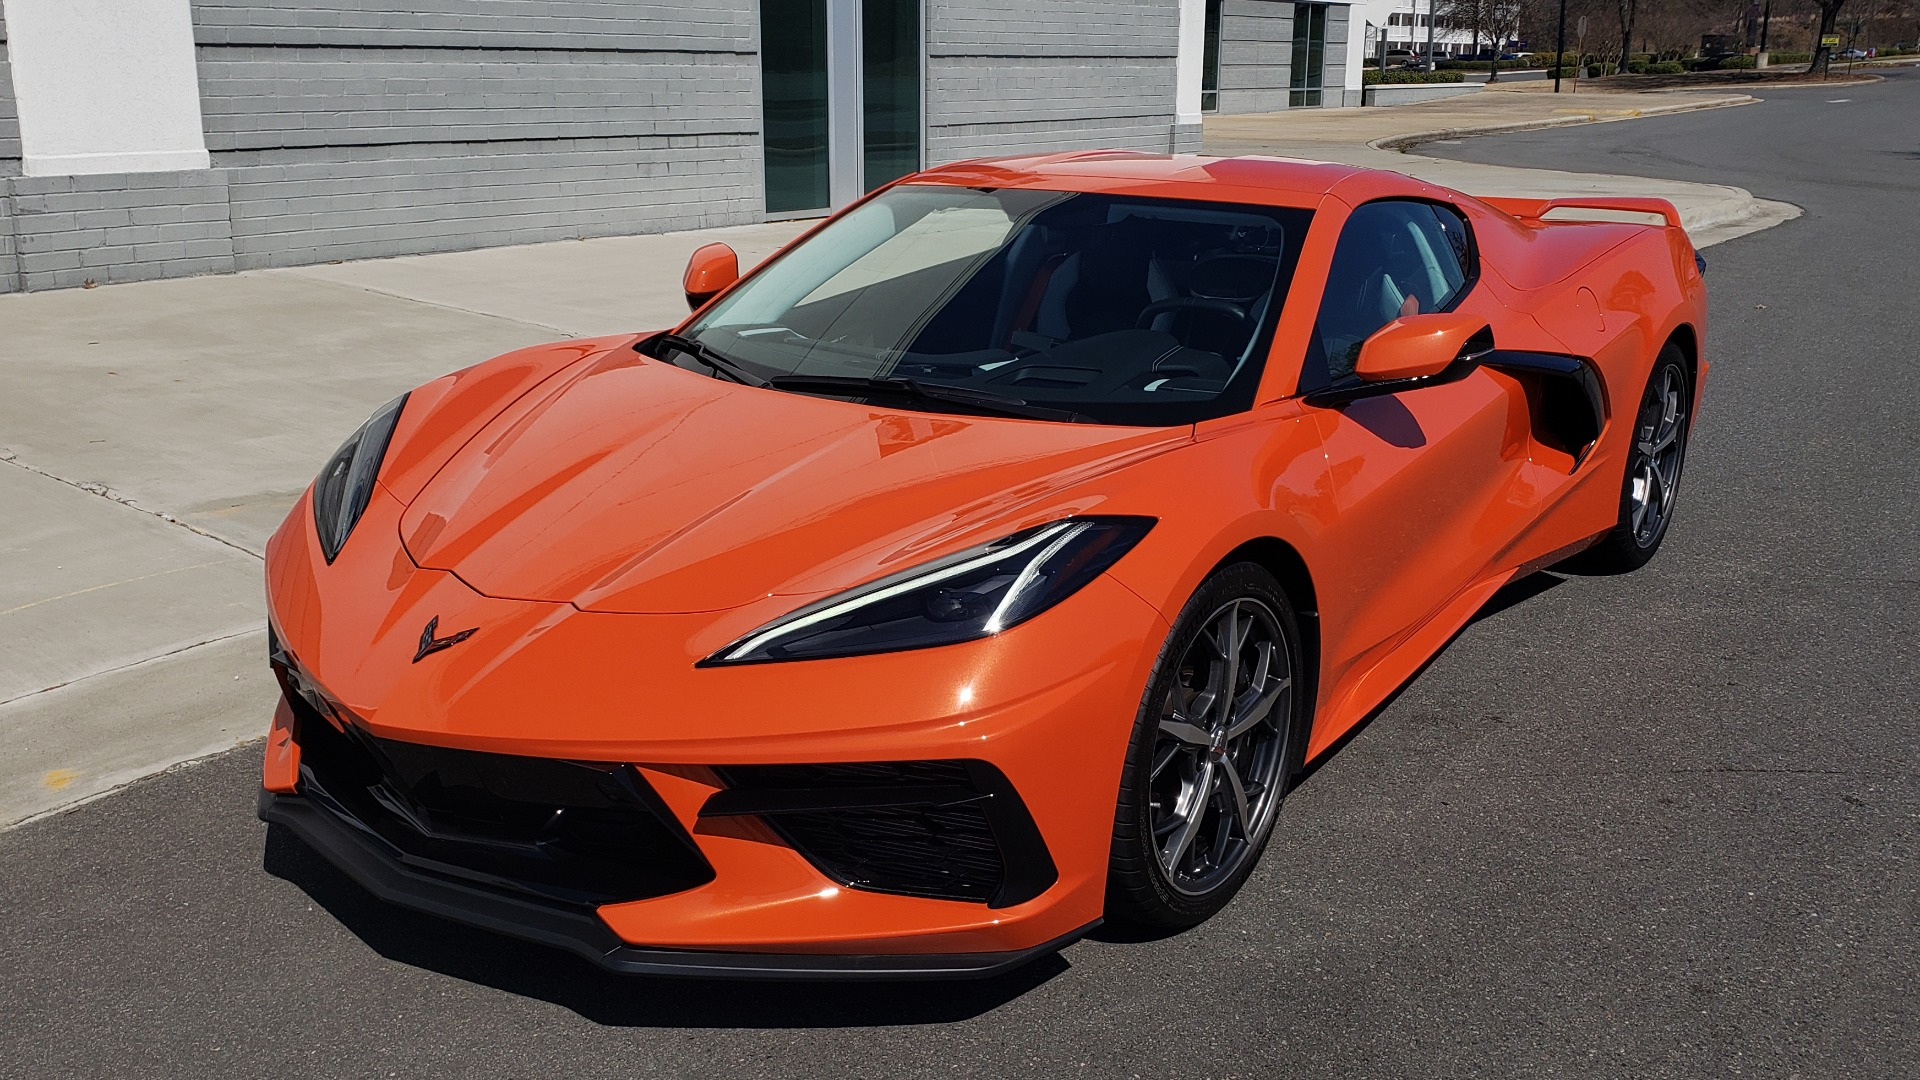 Used 2020 Chevrolet CORVETTE C8 STINGRAY 3LT COUPE / NAV / BOSE / CAMERA / LIKE NEW for sale Sold at Formula Imports in Charlotte NC 28227 1